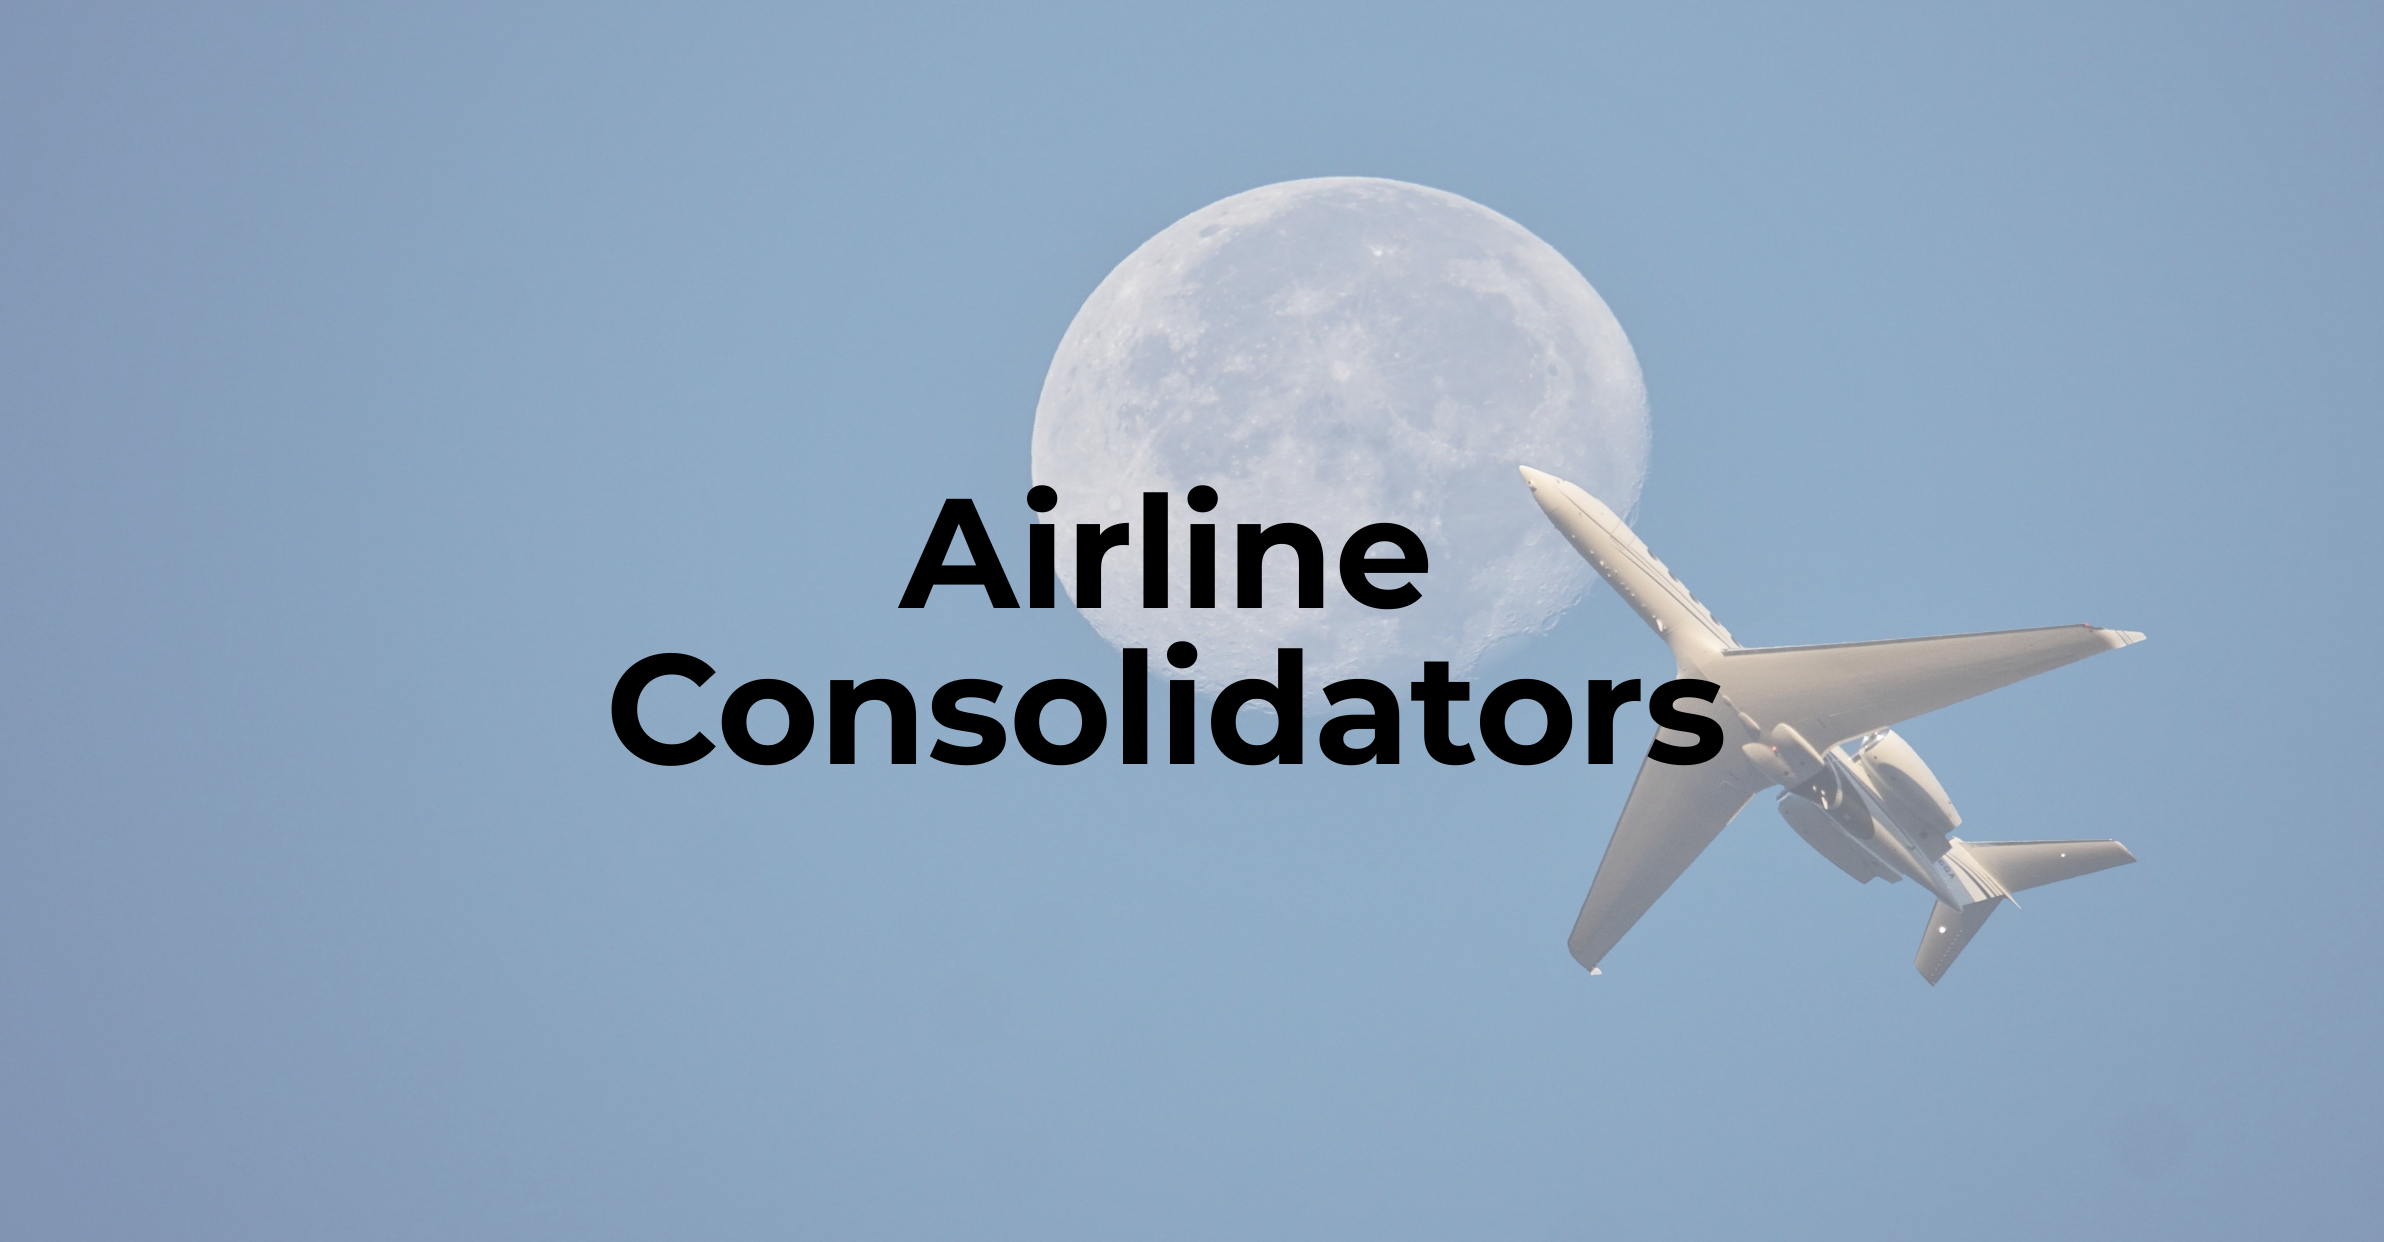 Airline Consolidators Overview: Their Role, Advantages, and Key Players